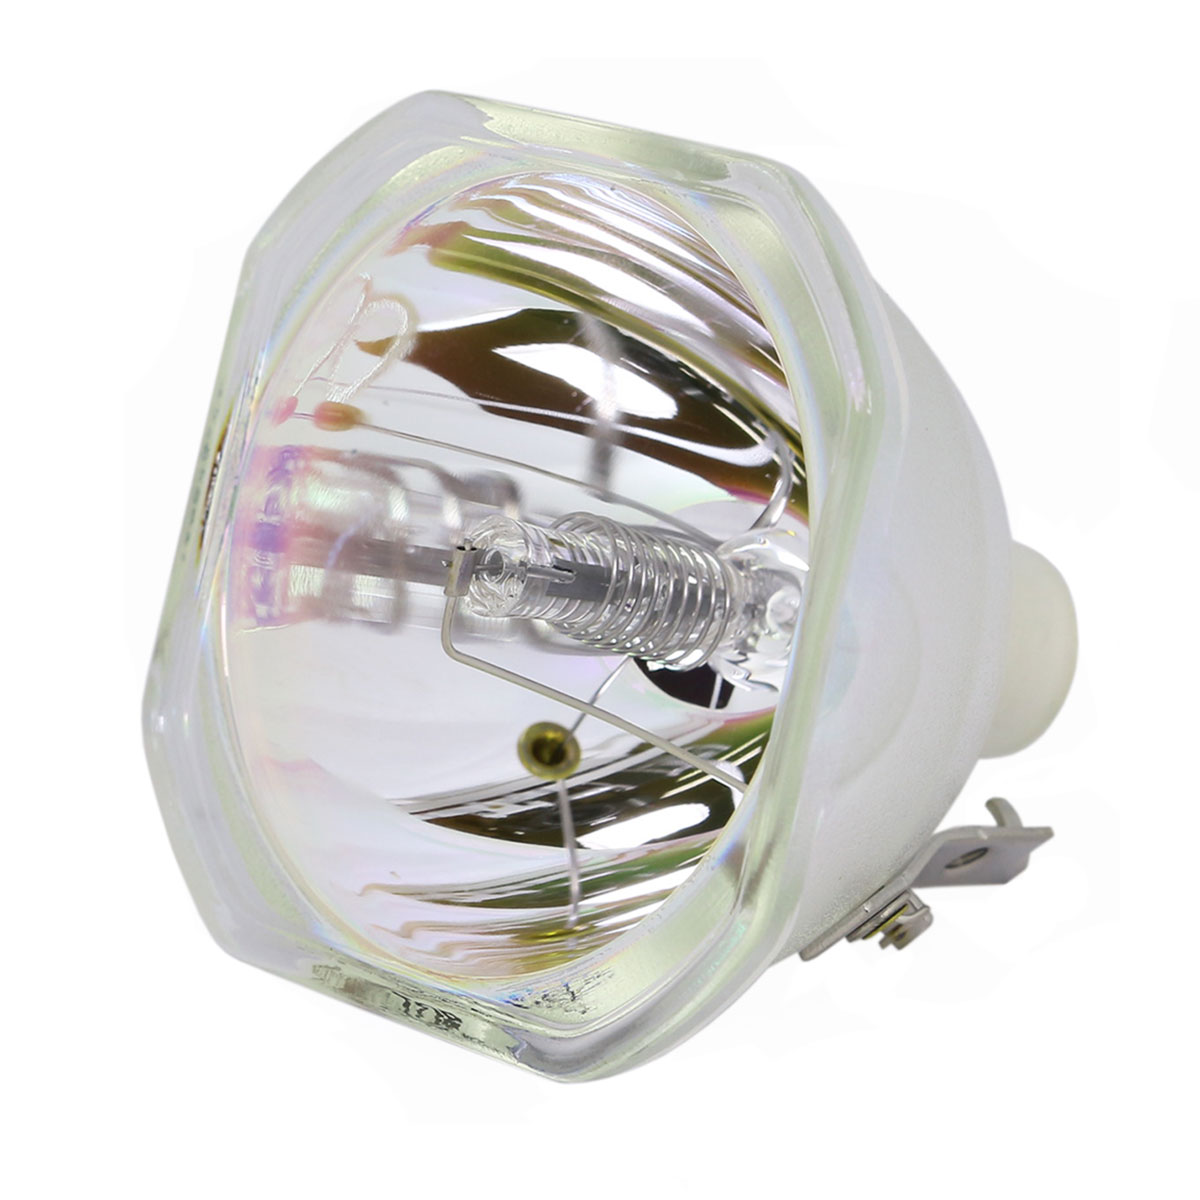 Lutema Platinum for Epson EB-4850WU Projector Lamp (Bulb Only) - image 5 of 5